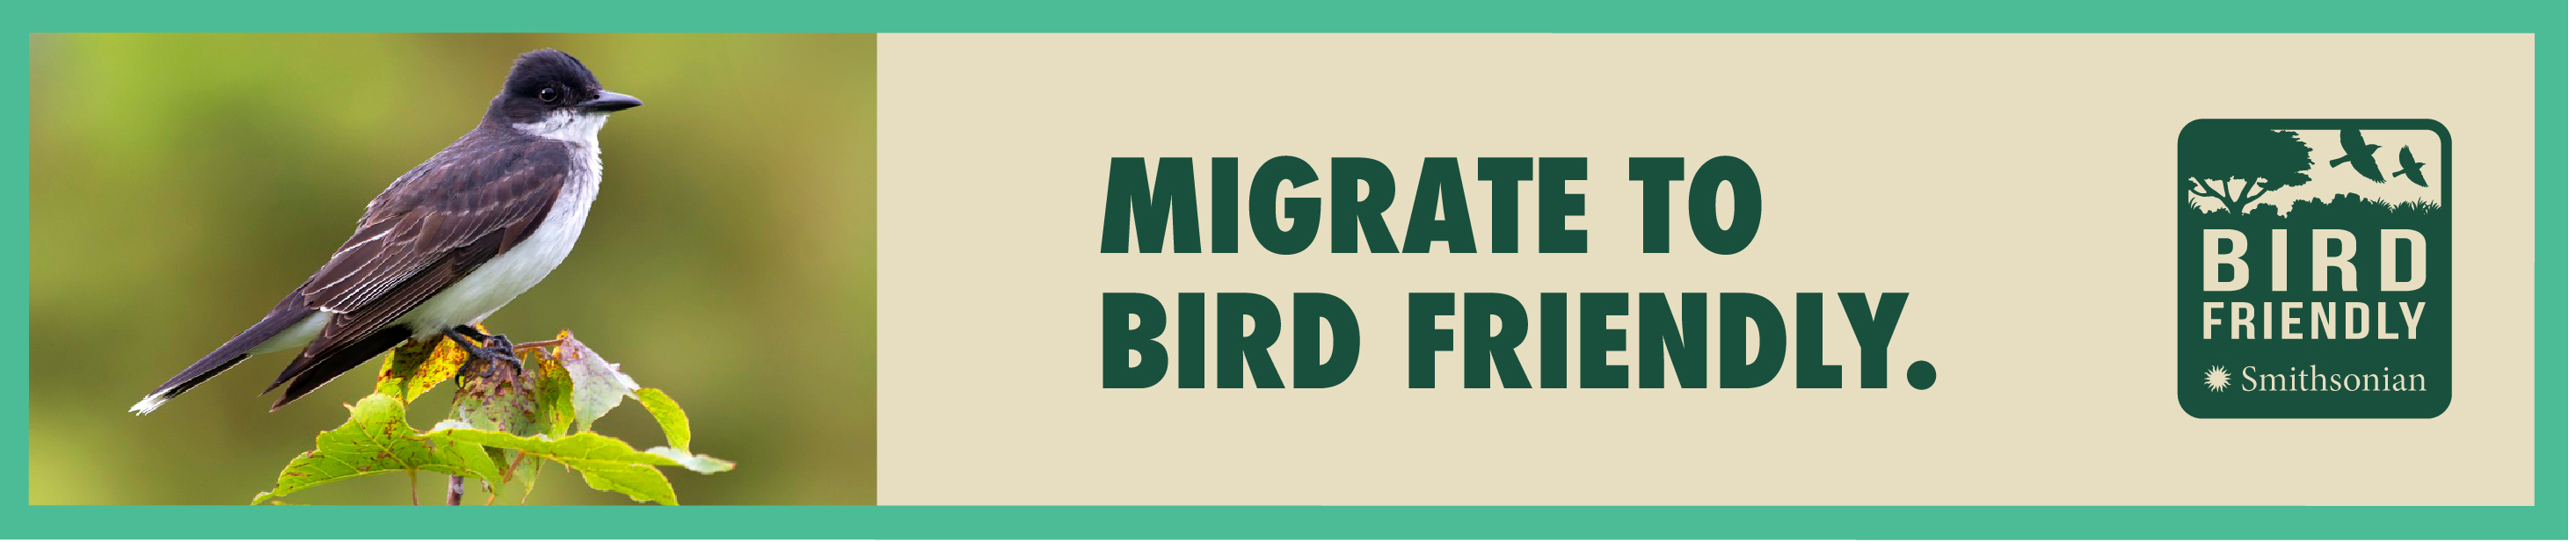 "A banner with a photo of a migratory bird perched on a tree branch on the left and the text ""Migrate to Bird Friendly"" with the Smithsonian Bird Friendly logo on the right"